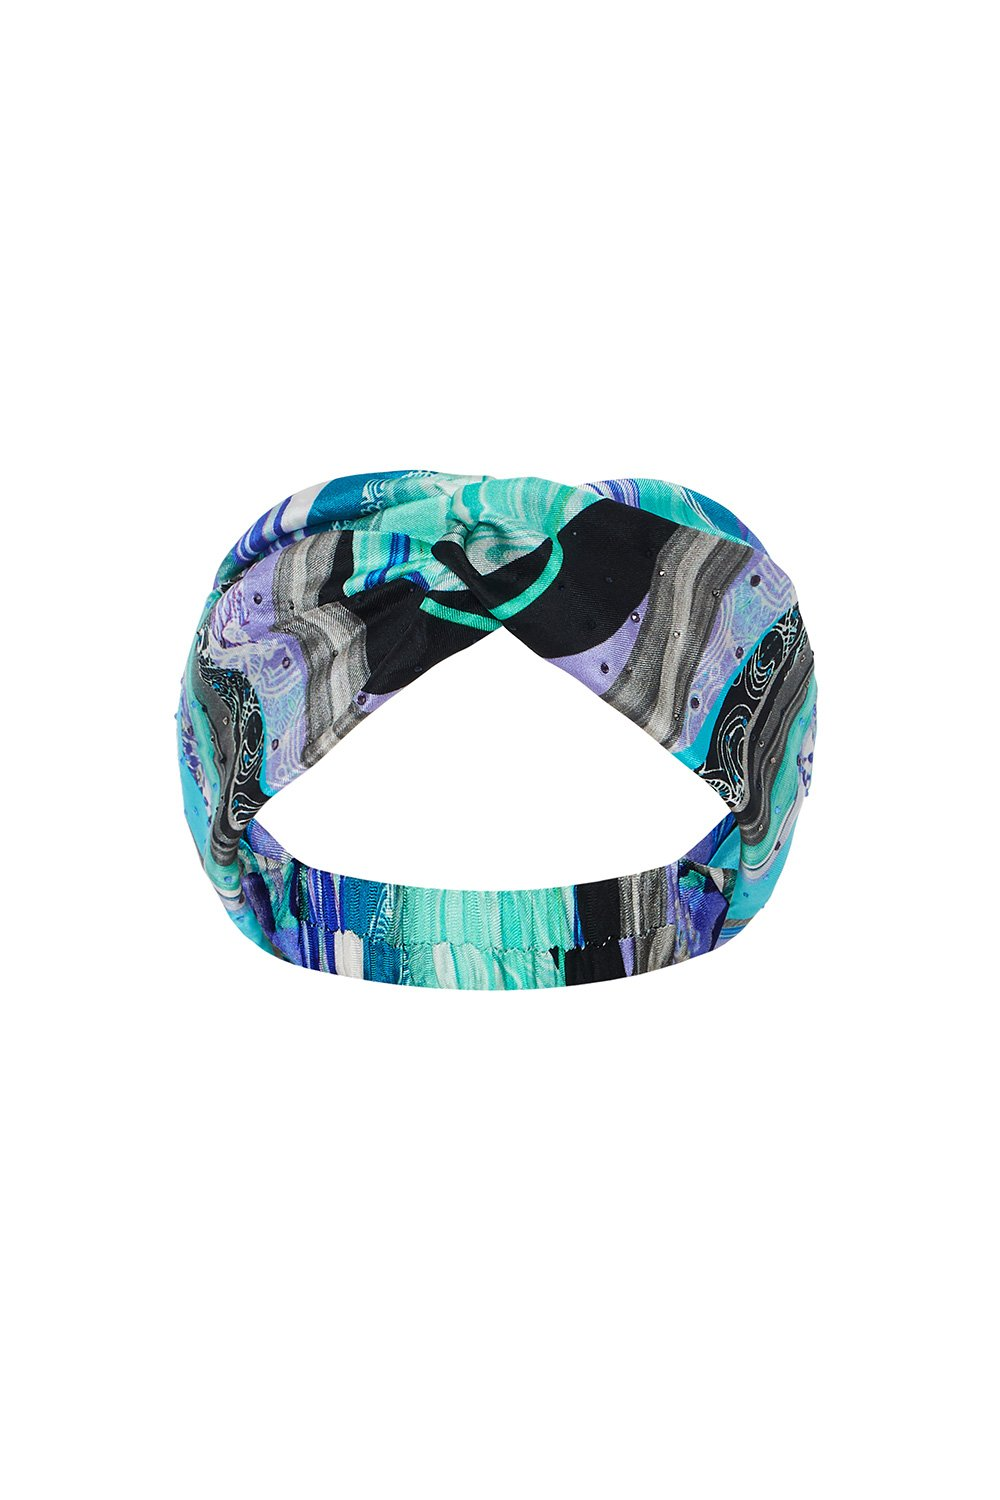 WOVEN TWIST HEADBAND WATEGOS WANDERLUST